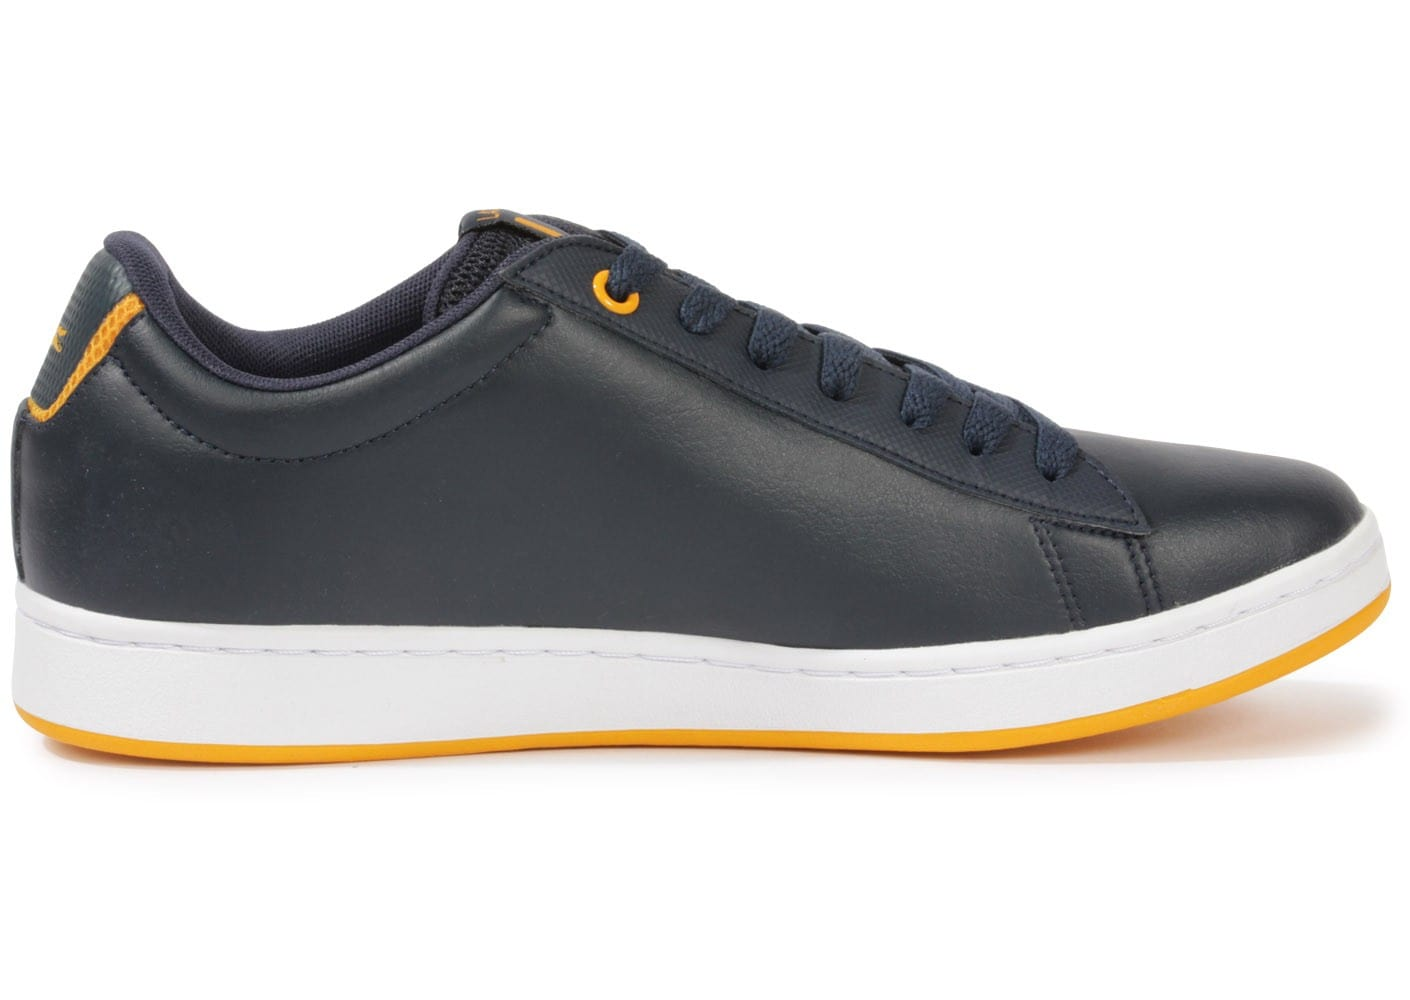 lacoste carnaby evo bleu marine chaussures homme chausport. Black Bedroom Furniture Sets. Home Design Ideas